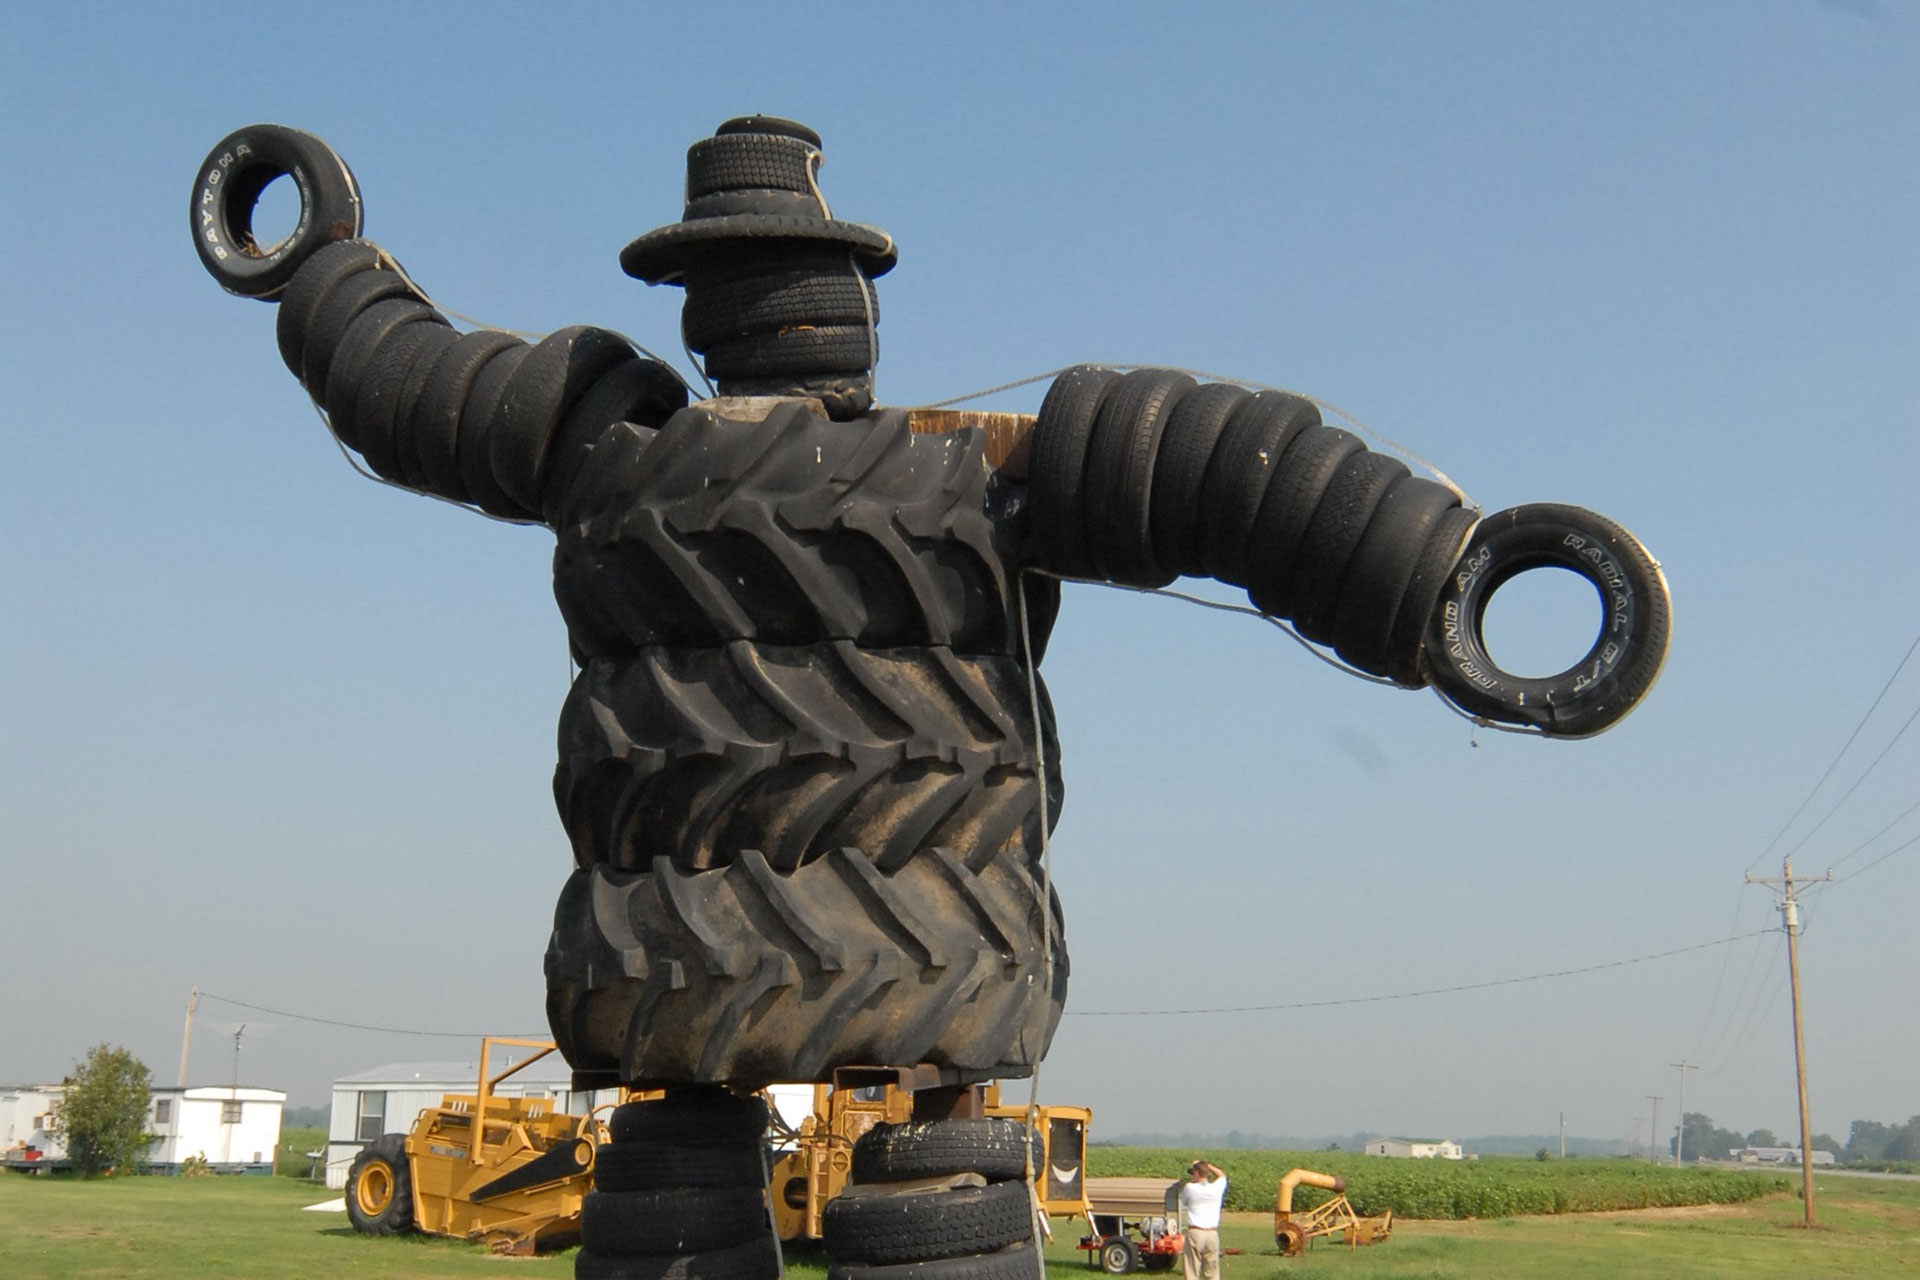 Charlie the Tire Man in Arkansas